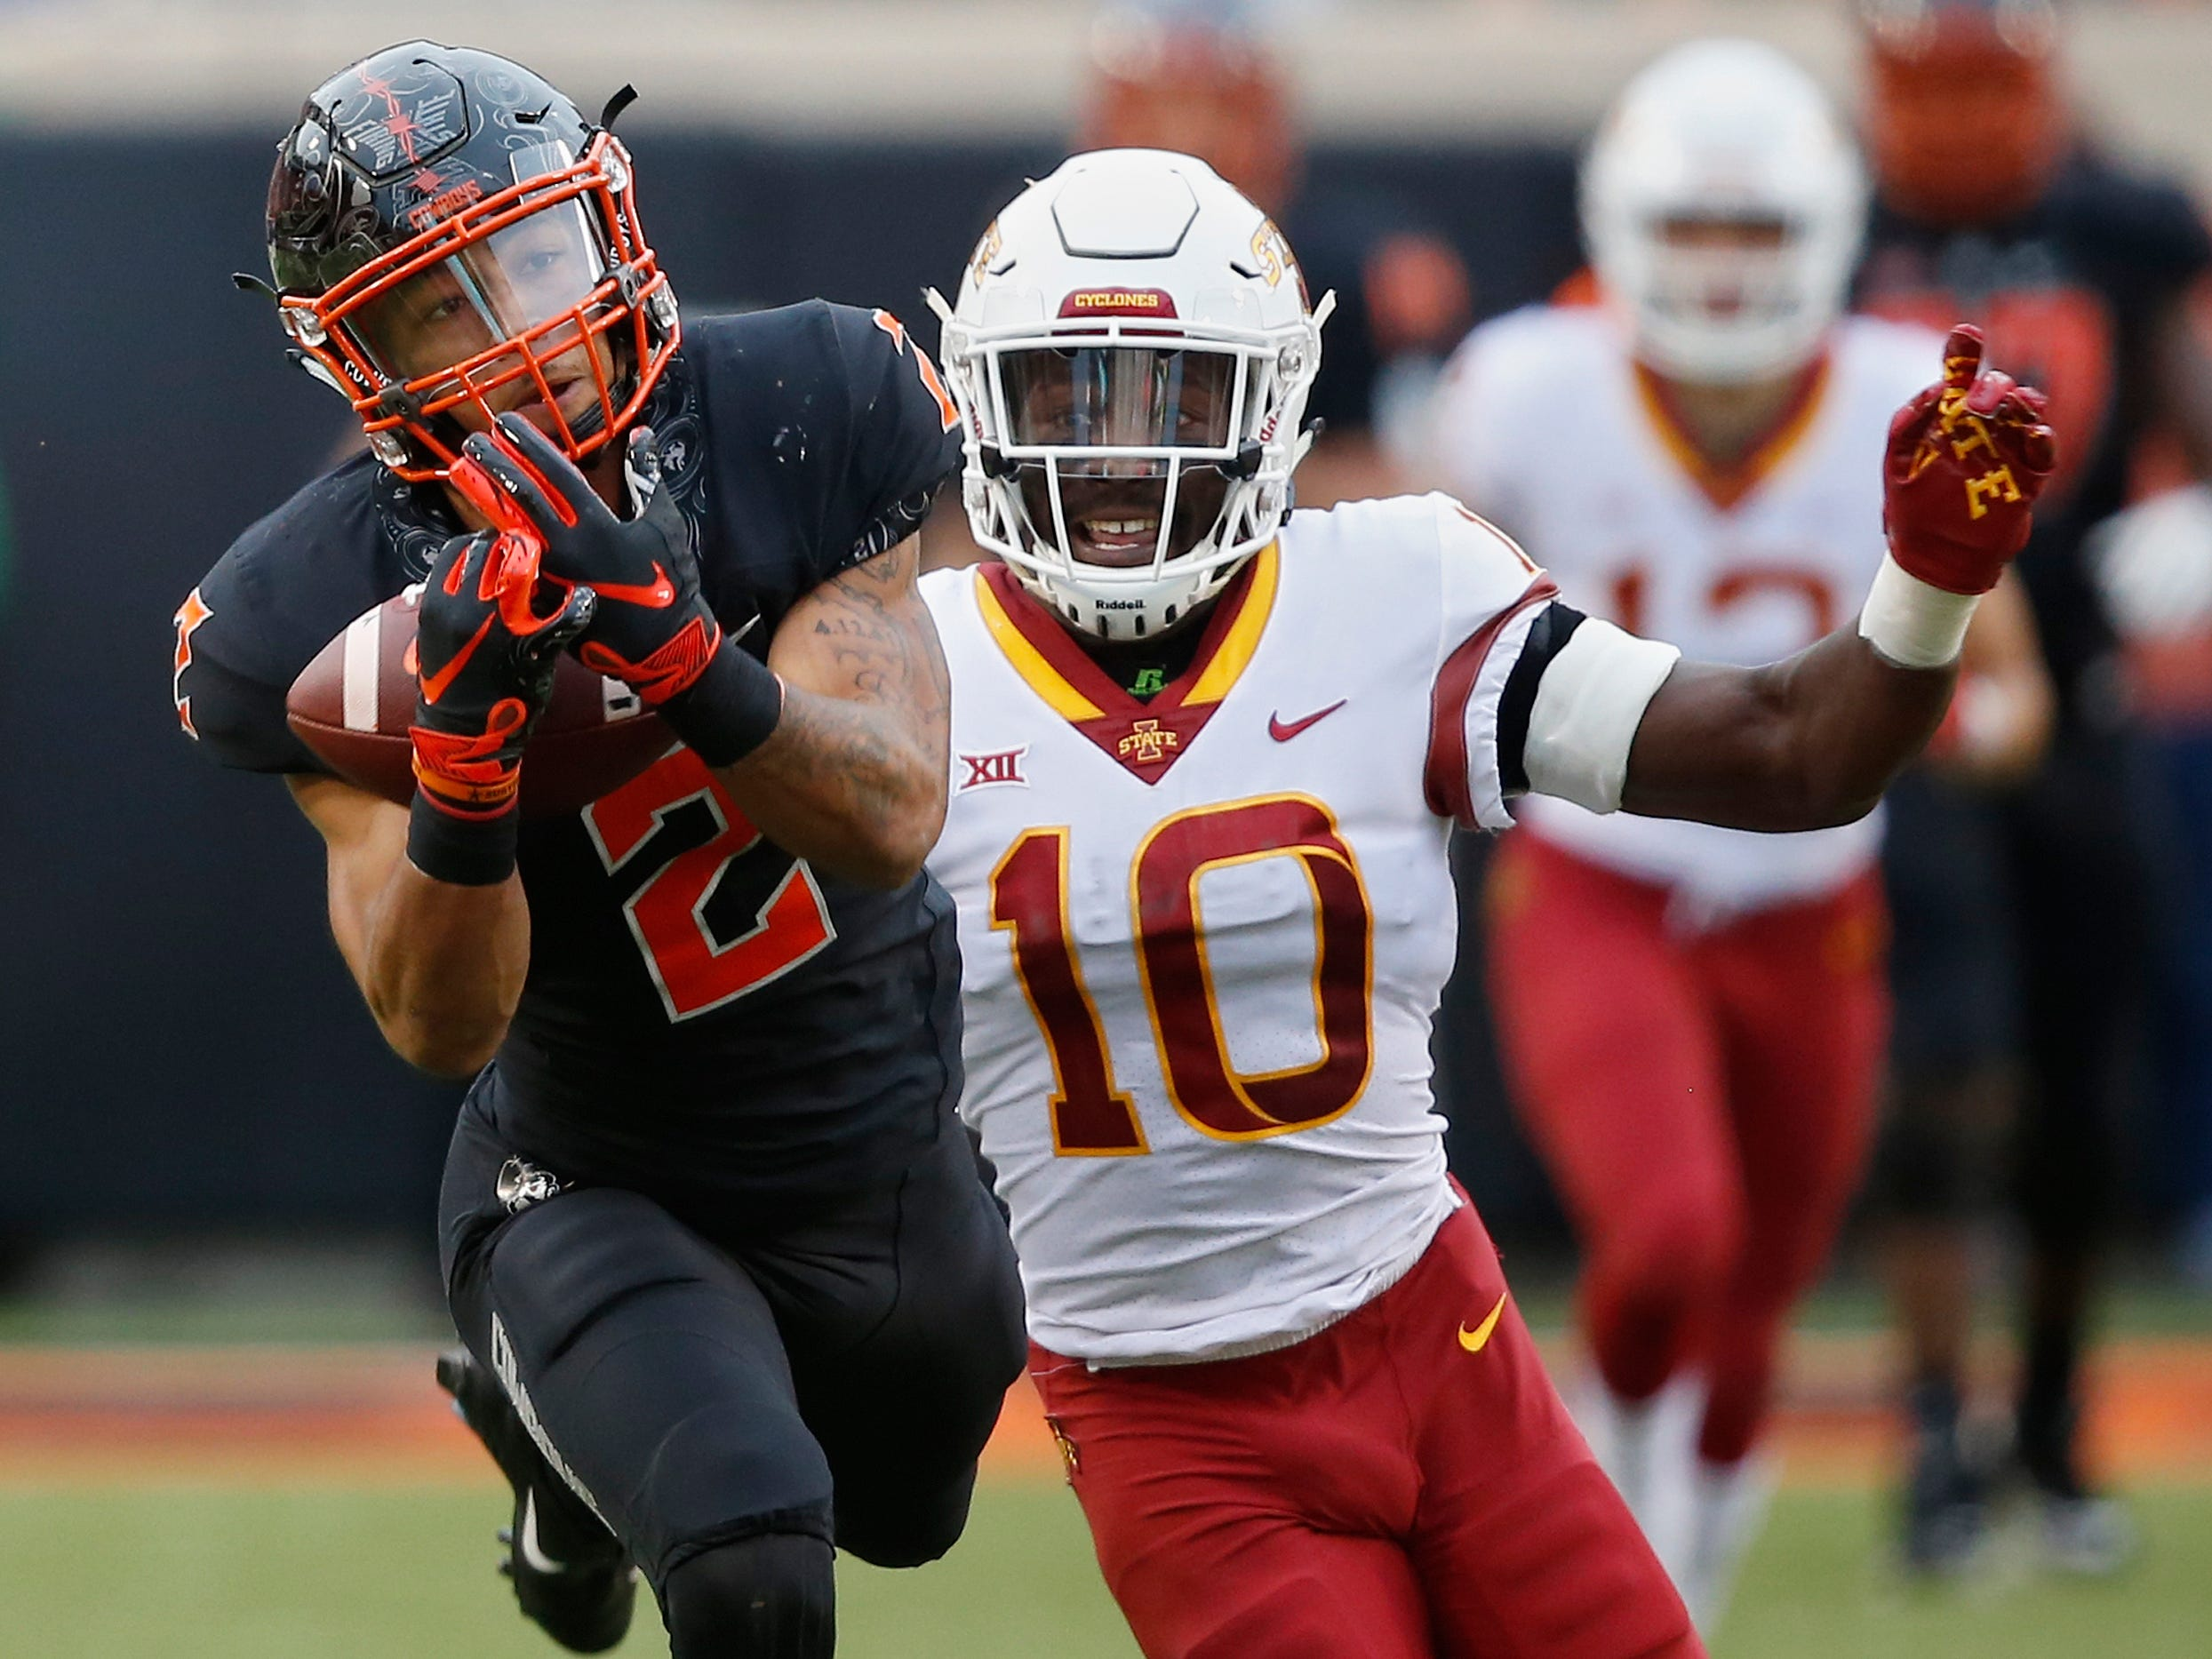 Oklahoma State wide receiver Tylan Wallace (2) can't hold onto the ball on a pass in front of Iowa State defensive back Brian Peavy (10) in the second half of an NCAA college football game in Stillwater, Okla., Saturday, Oct. 6, 2018.